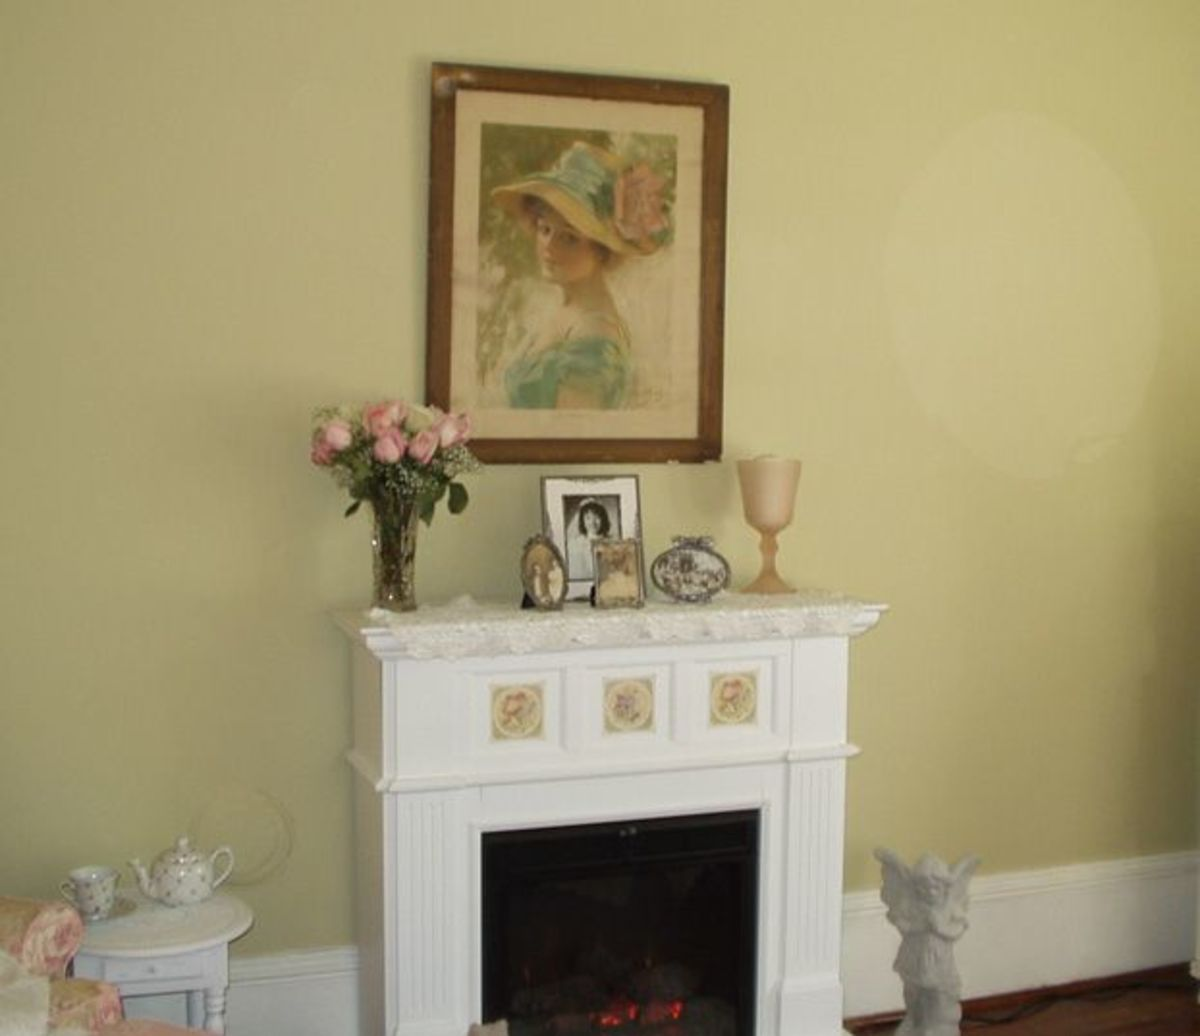 The electric fireplace has rose decals added. Mantel decorations include an antique vase, bride photos, and a vase of pink roses. Above the fireplace is a old portrait.